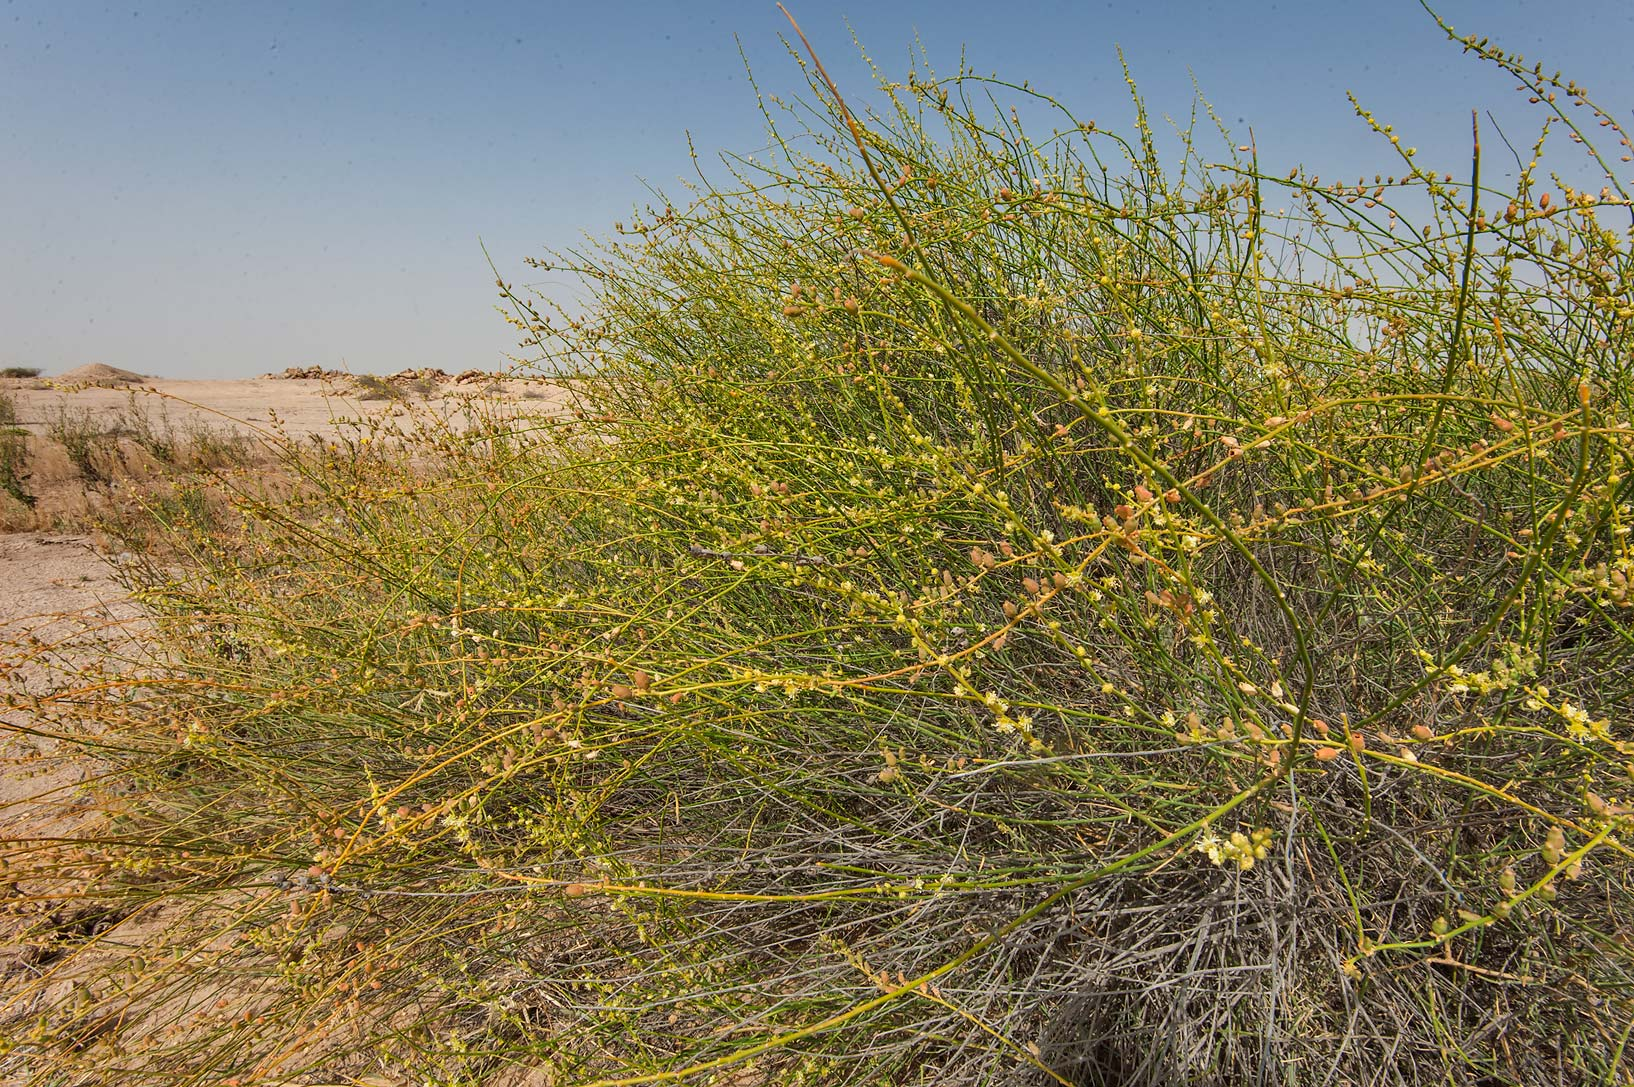 Ochradenus aucheri with flowers and fruits on...in Irkhaya (Irkaya) Farms. Qatar